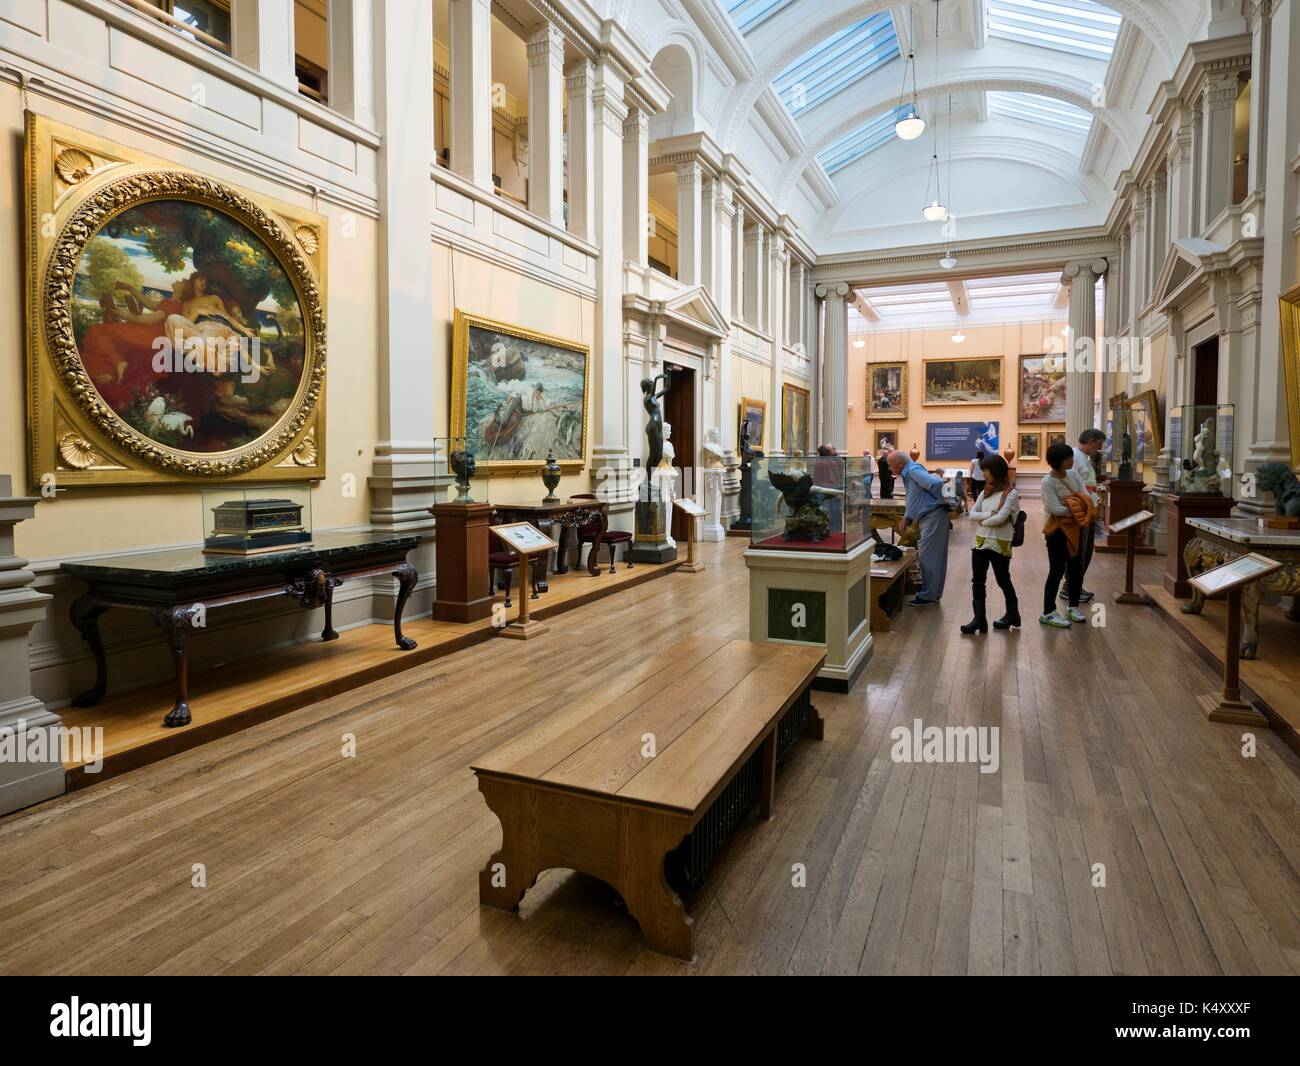 The Main Hall at the Lady Lever Art Gallery, Port Sunlight, Merseyside. - Stock Image